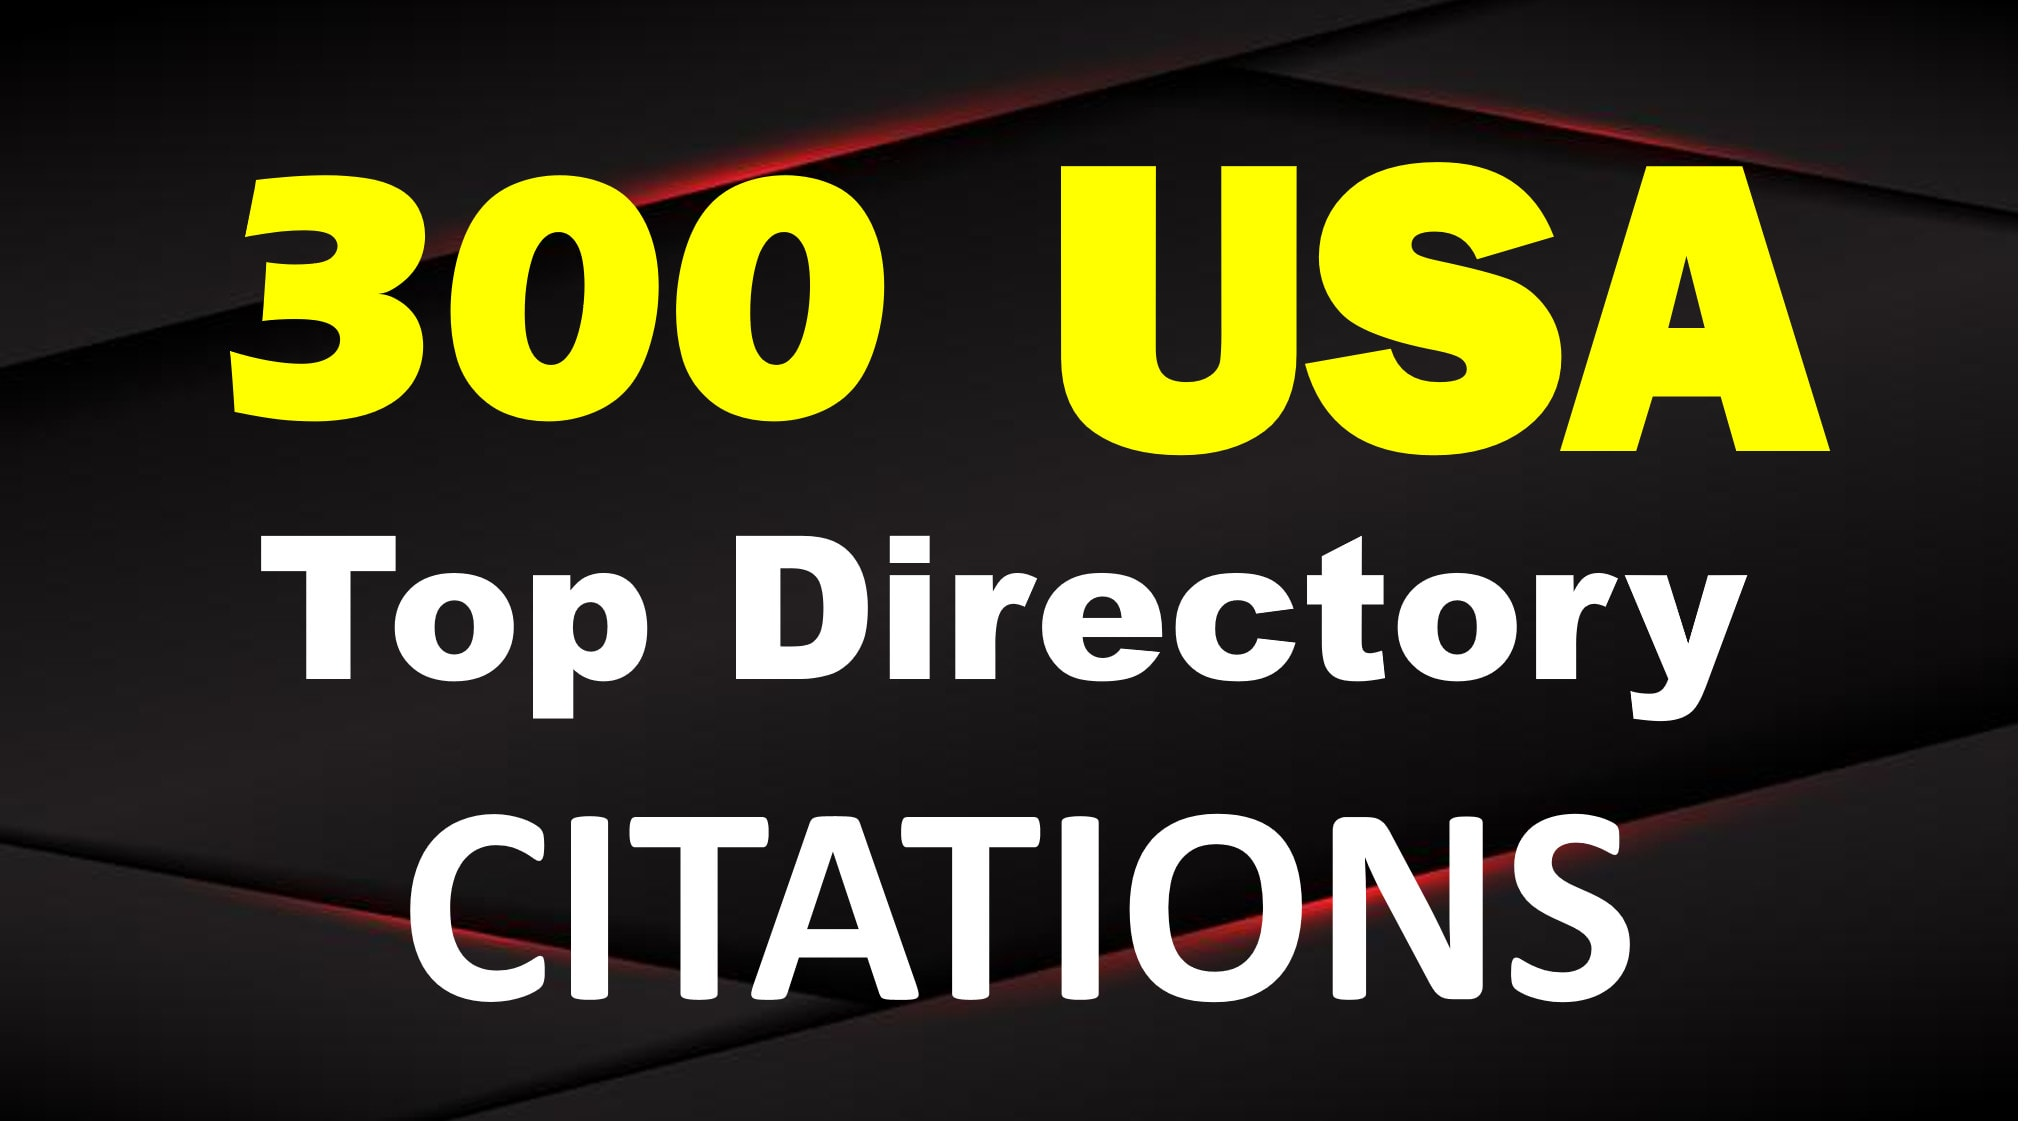 I will 300 USA local citations and business directories